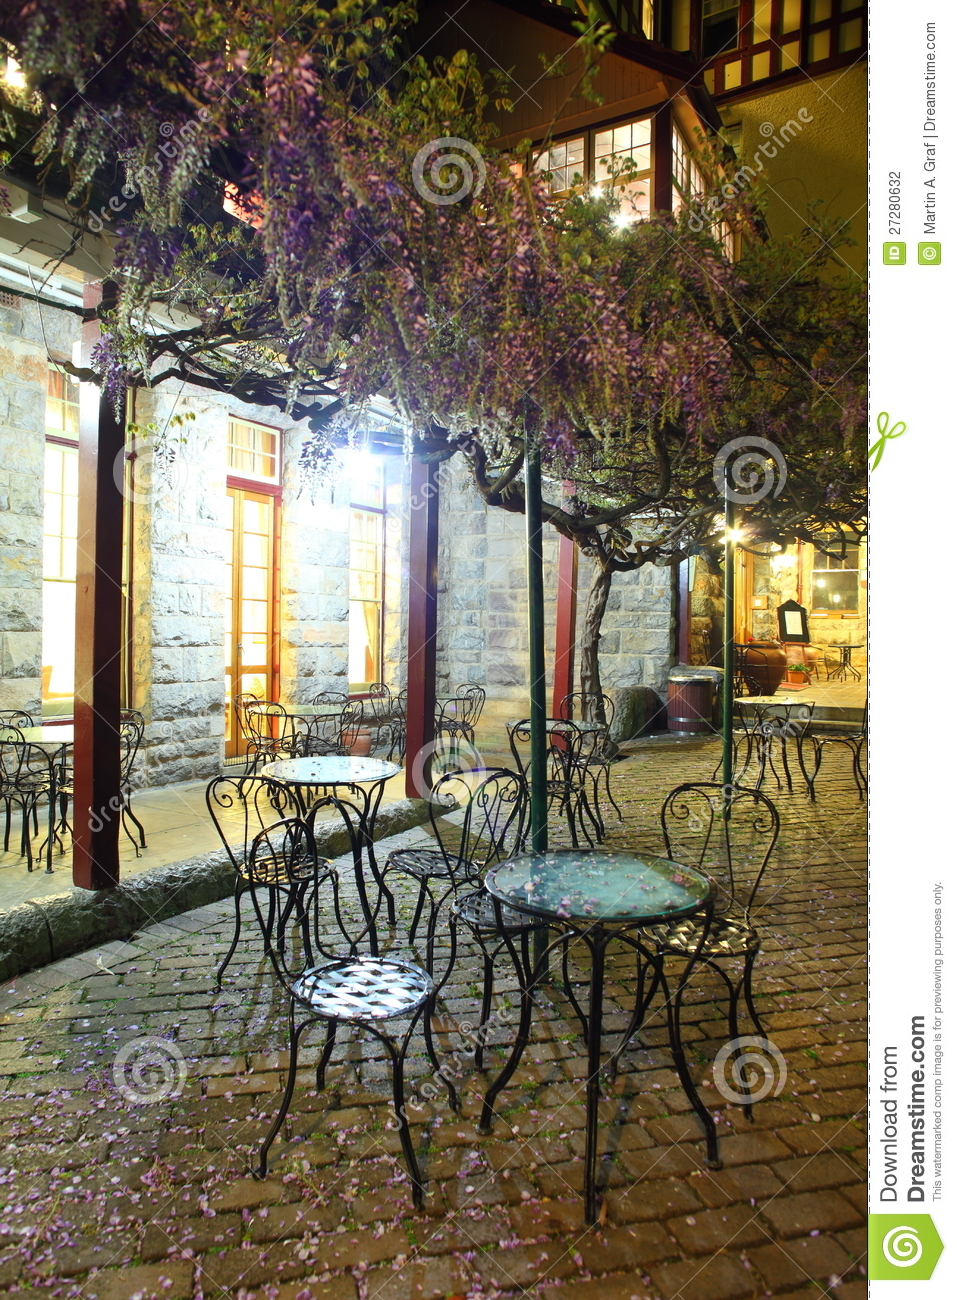 Petals Covering Bistro Chairs Night Scenery Stock